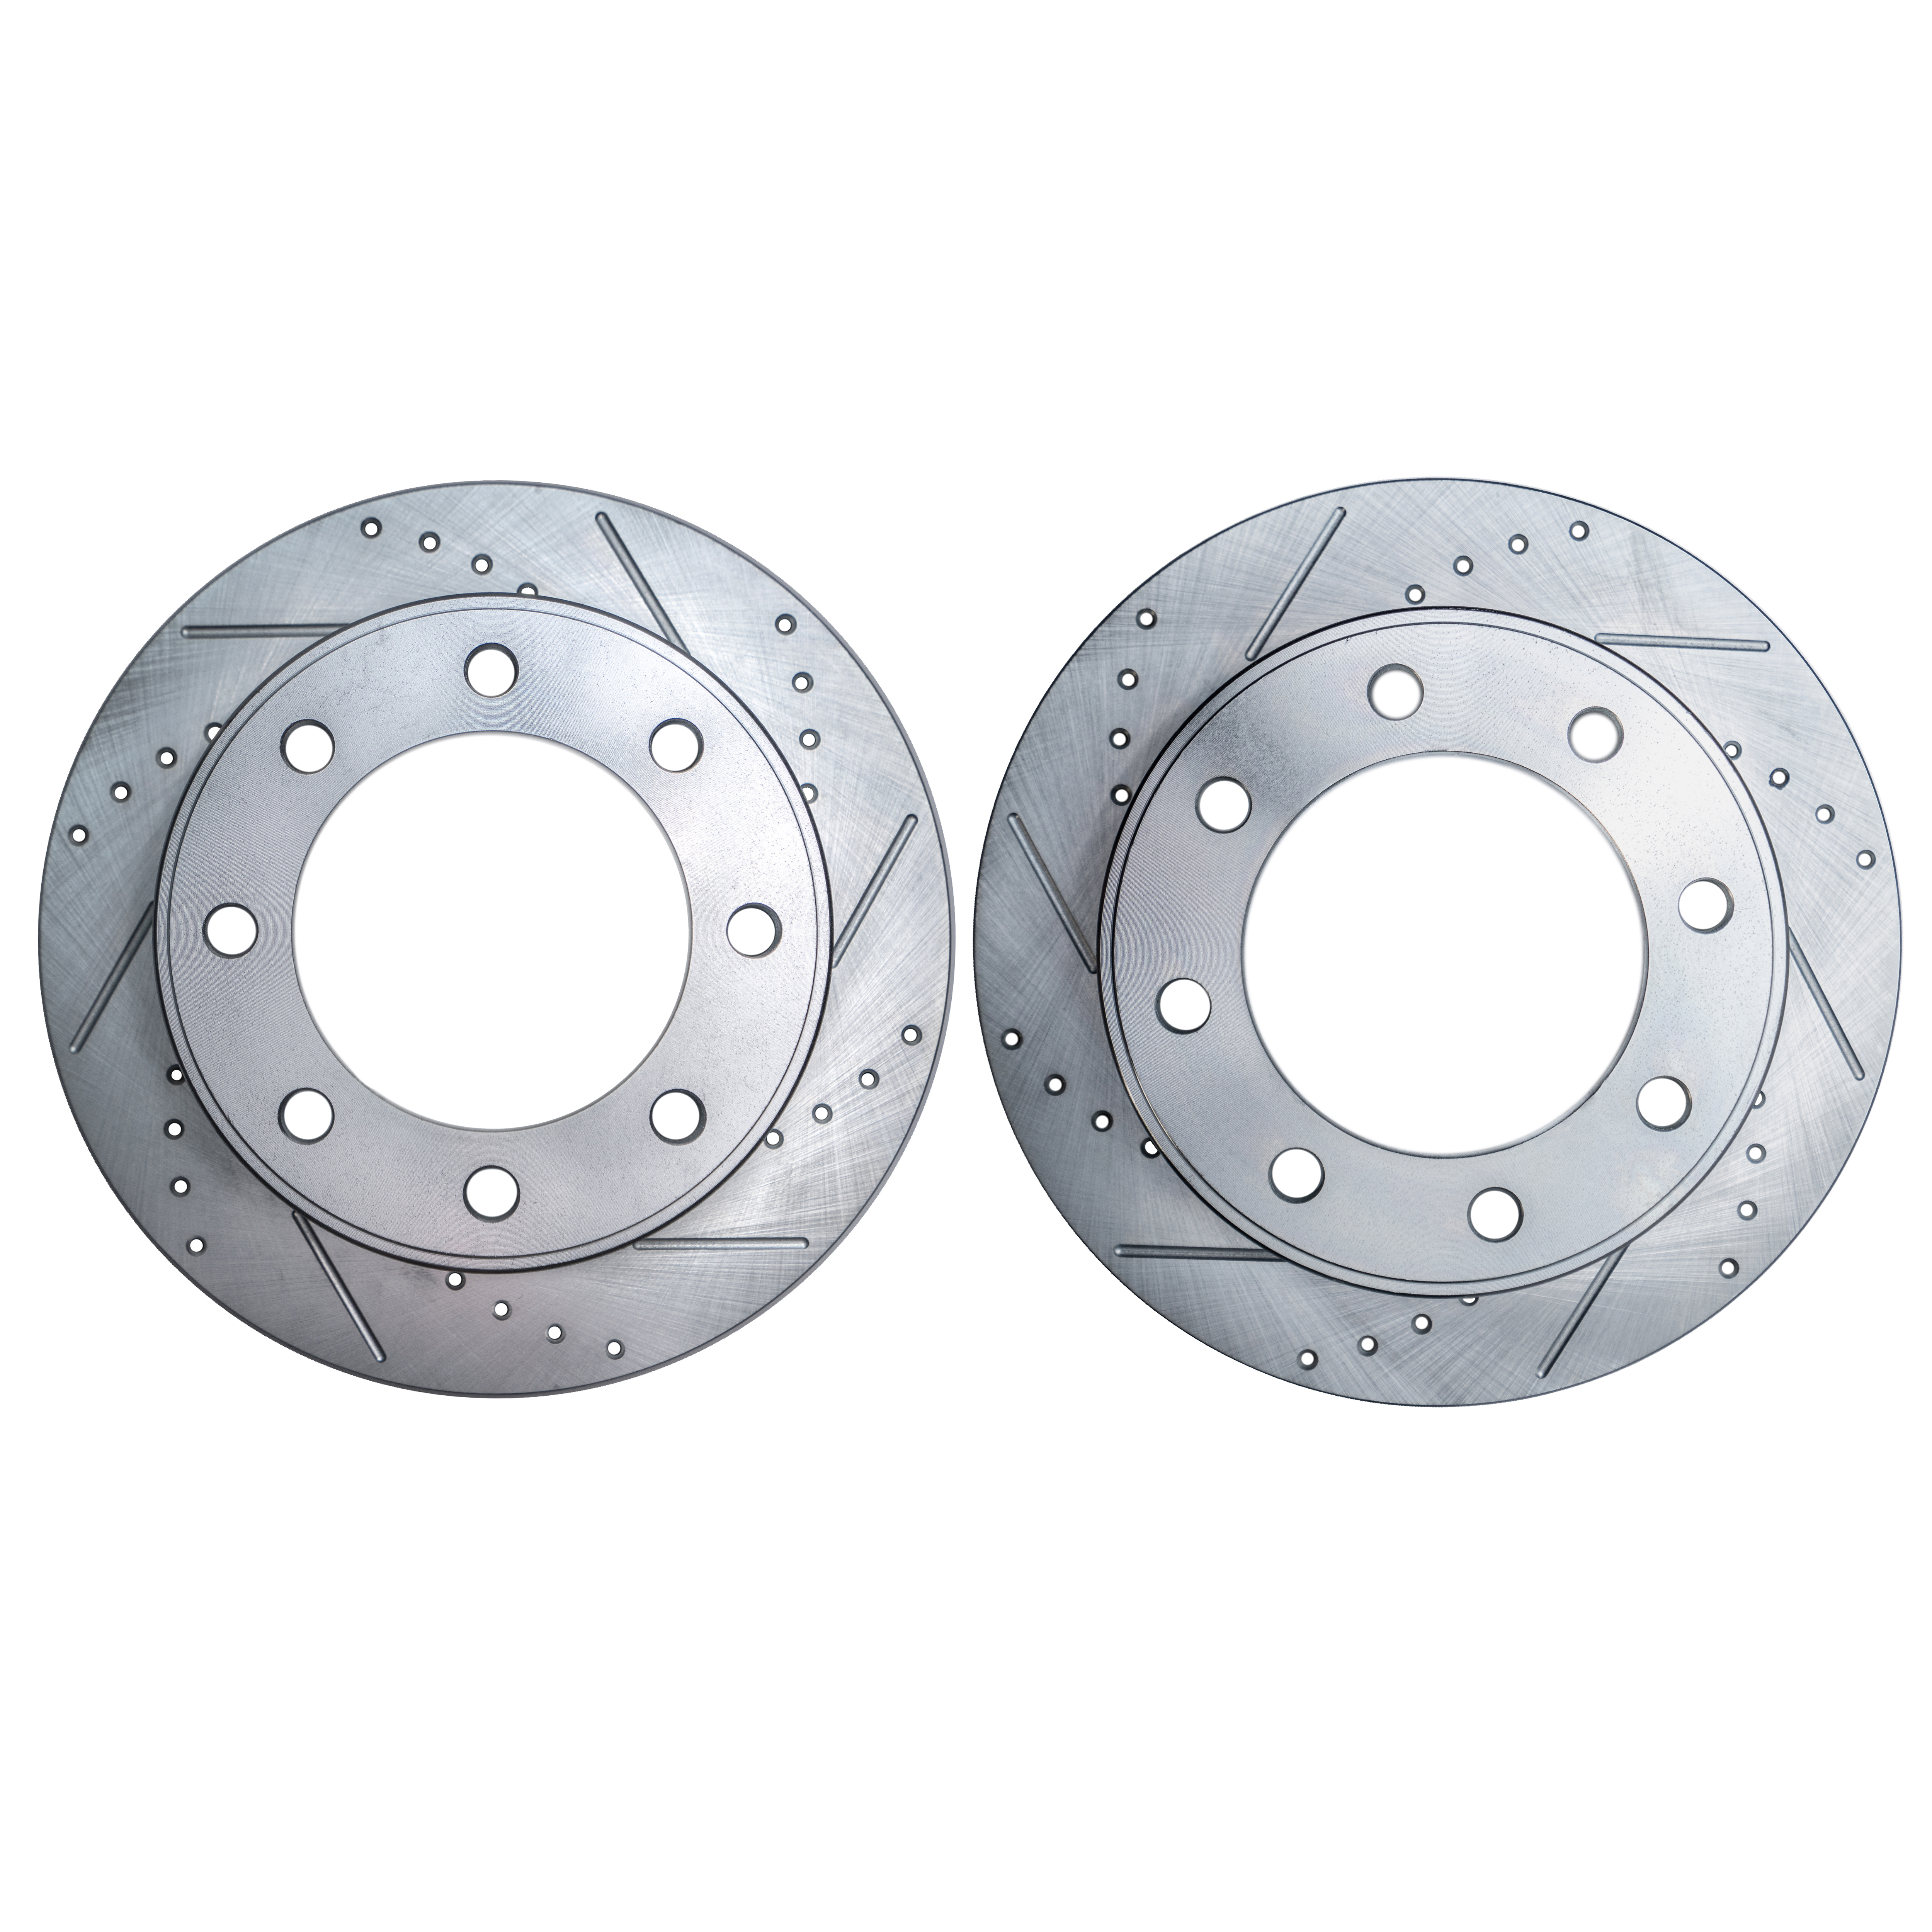 Pair (2) (331mm) Drilled & Slotted FRONT Brake Rotors for 4WD